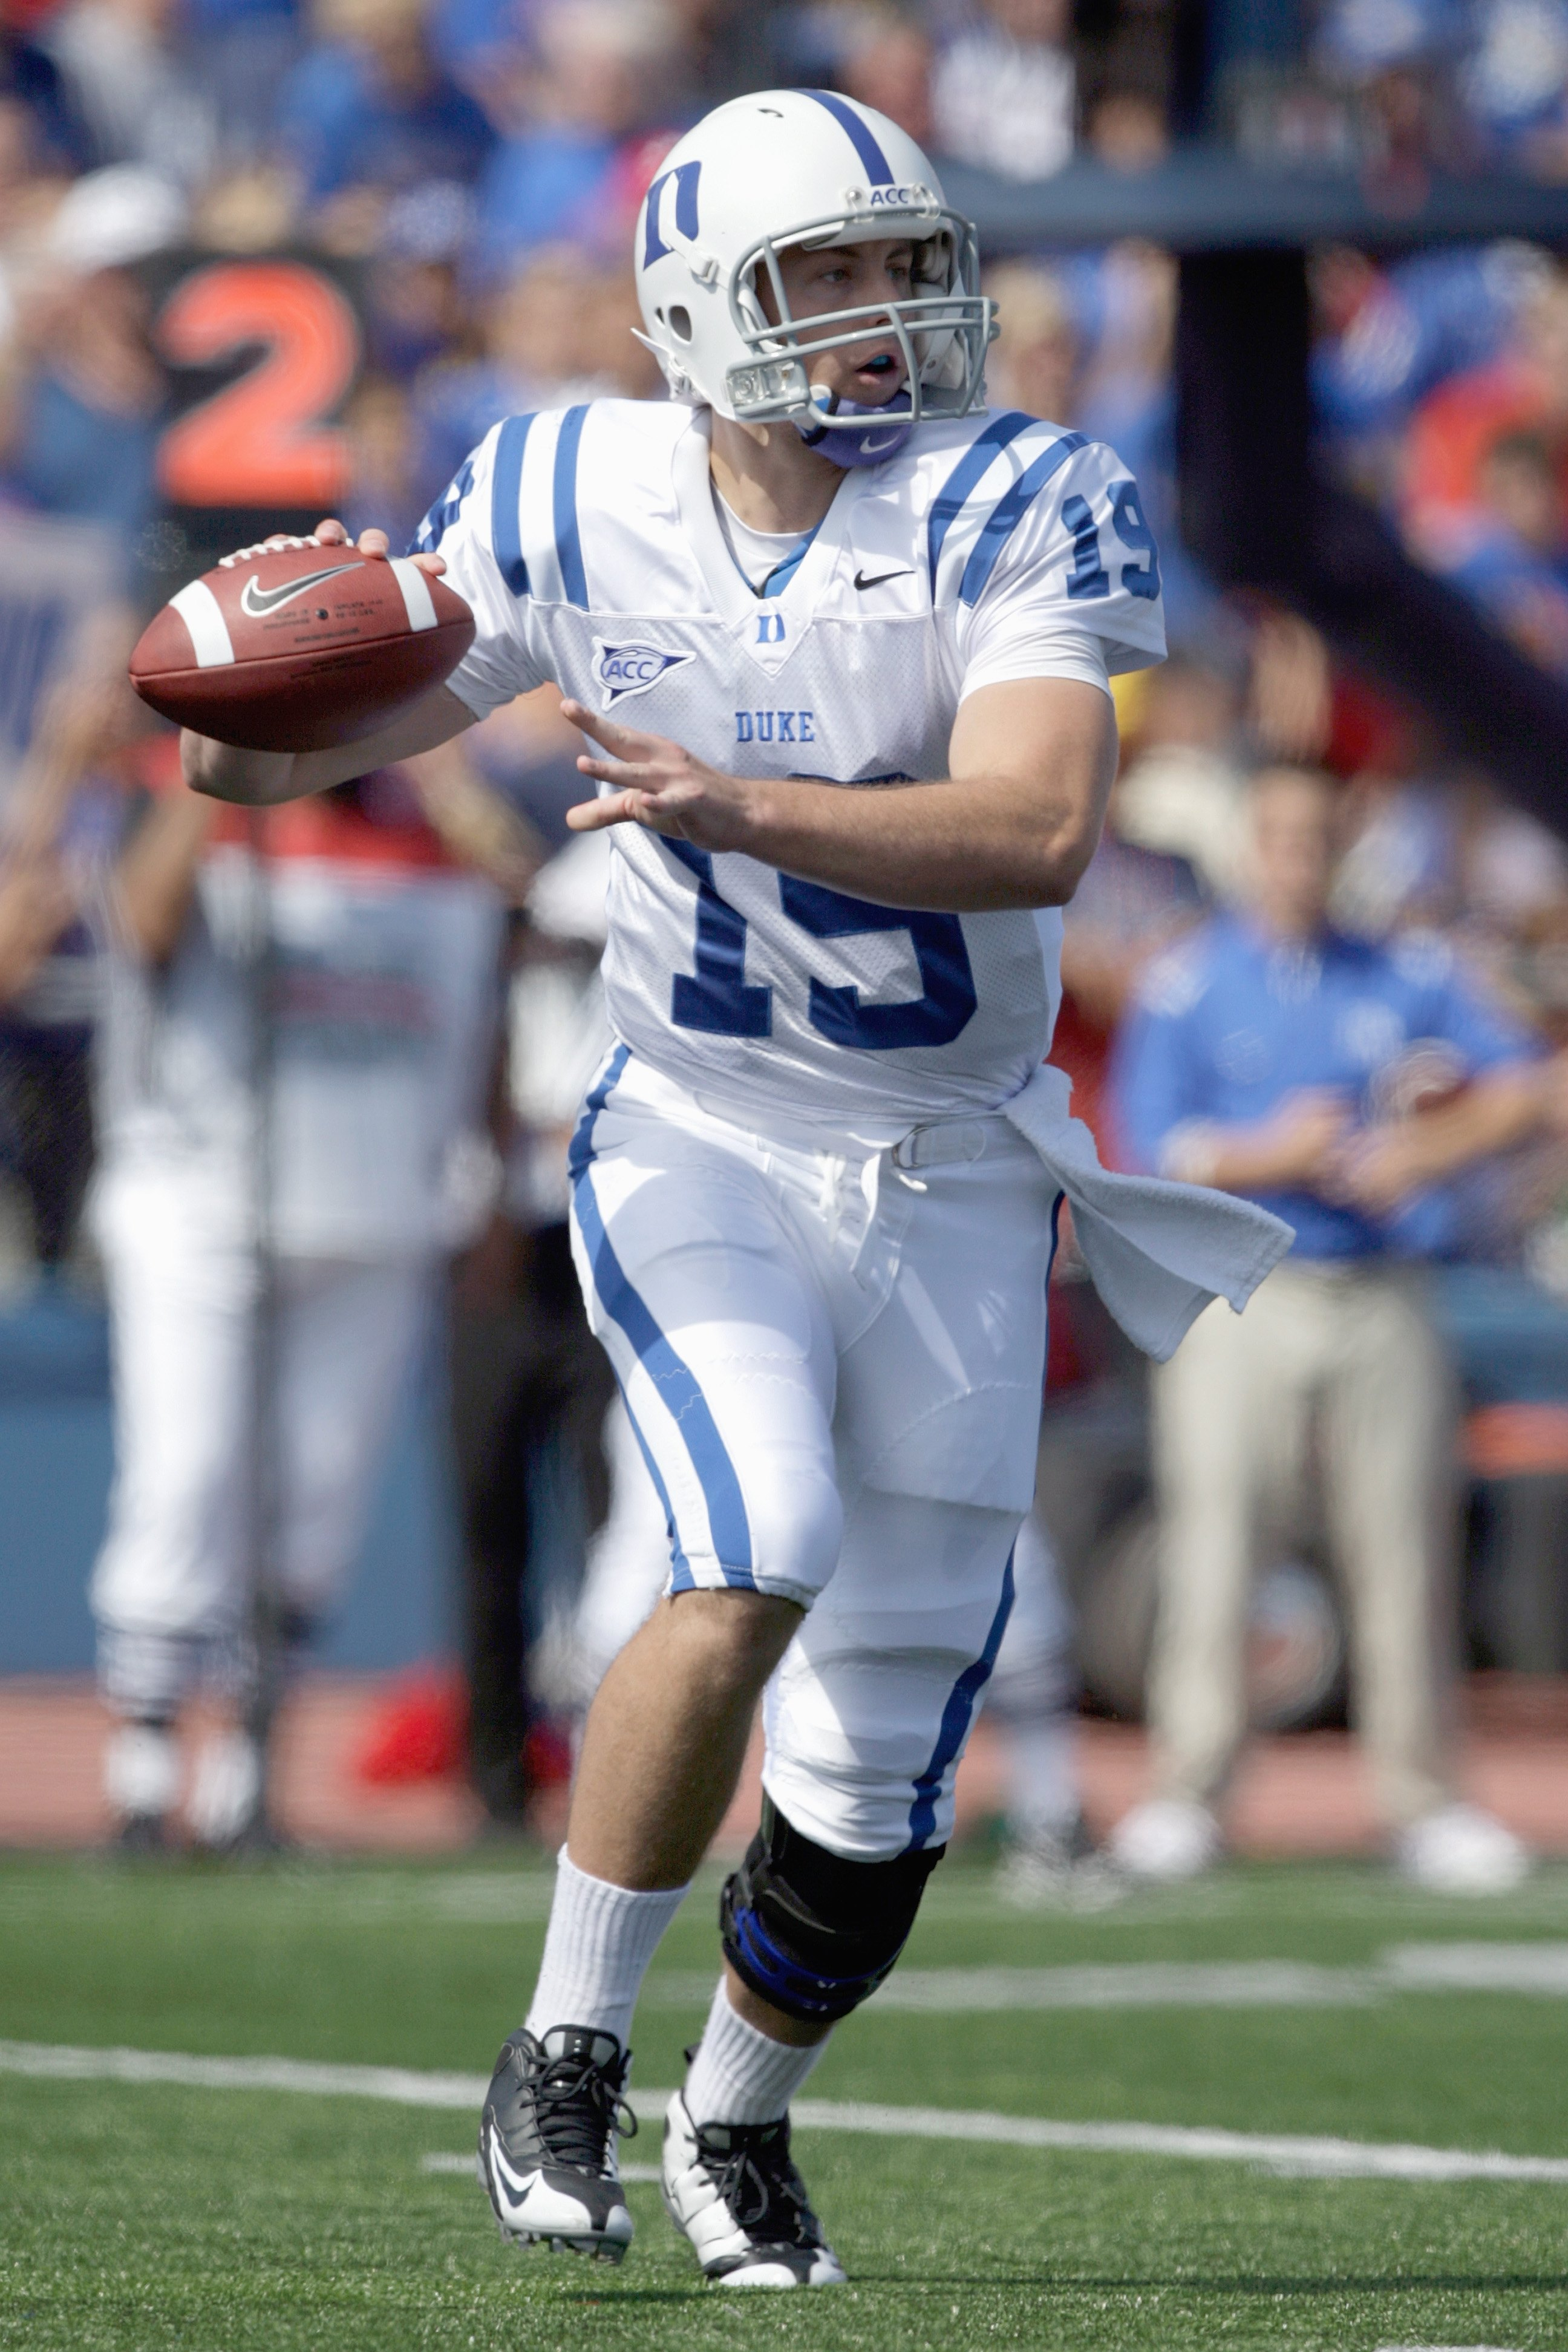 LAWRENCE, KS - SEPTEMBER 19:  Quarterback Sean Renfree #19 of the Duke Blue Devils looks to pass the ball during the game against the Kansas Jayhawks at Kivisto Field at Memorial Stadium on September 19, 2009 in Lawrence, Kansas. (Photo by Jamie Squire/Ge